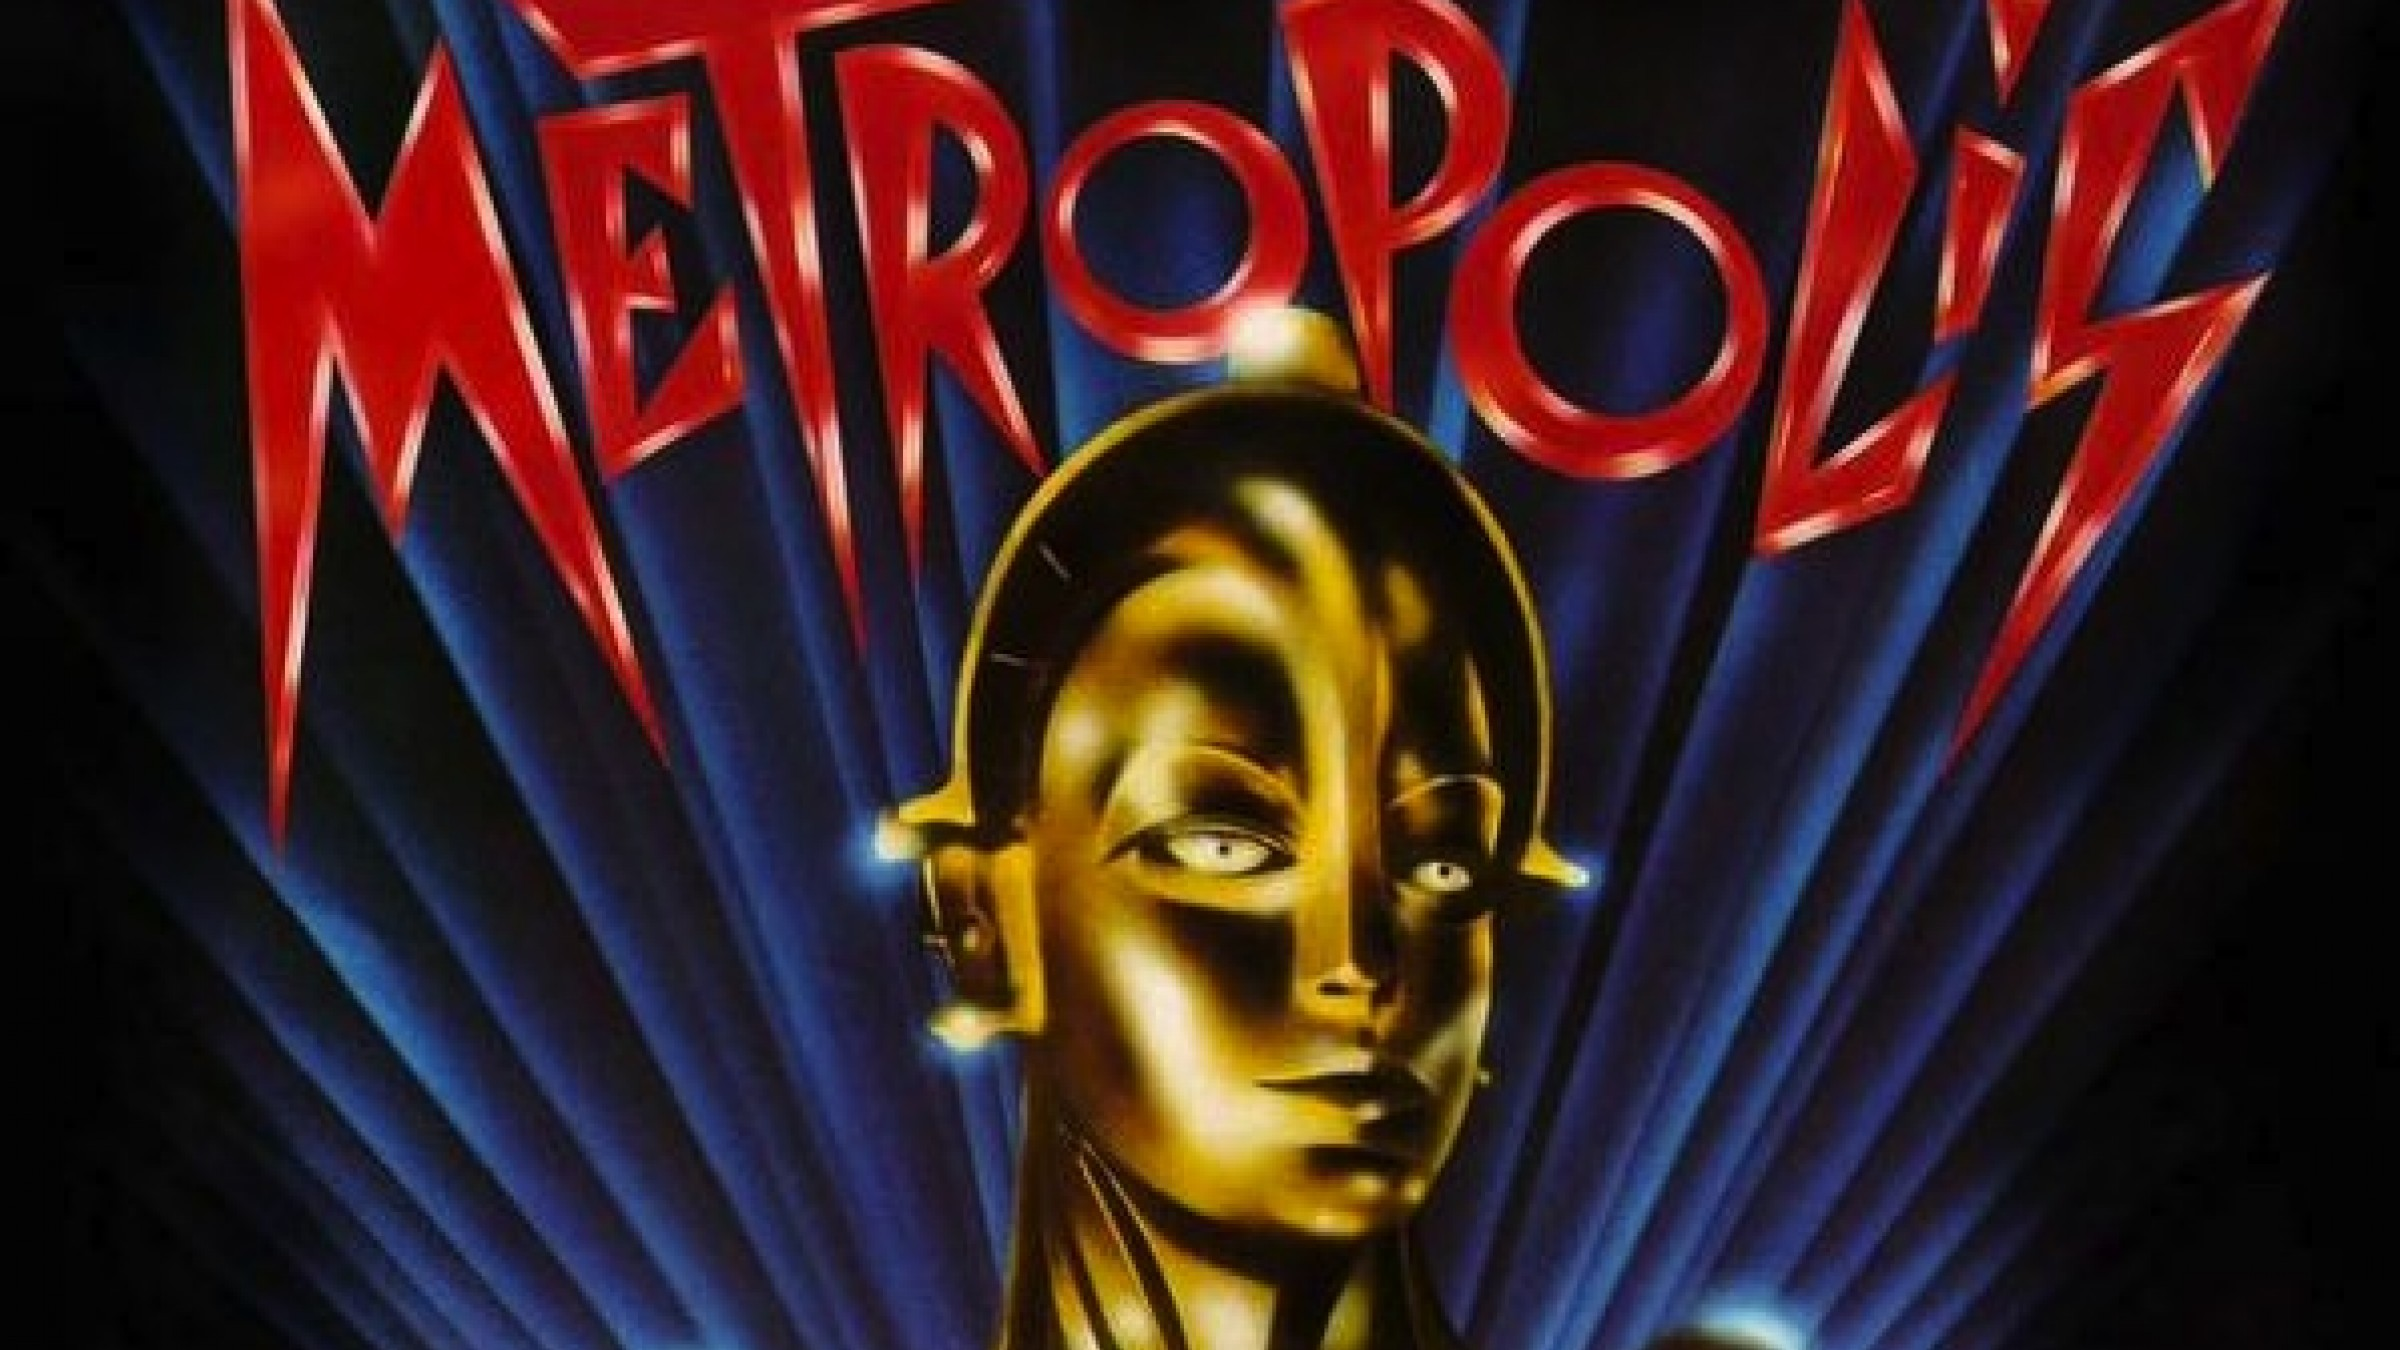 Experience the Synth Pop Version of 'Metropolis' Featuring